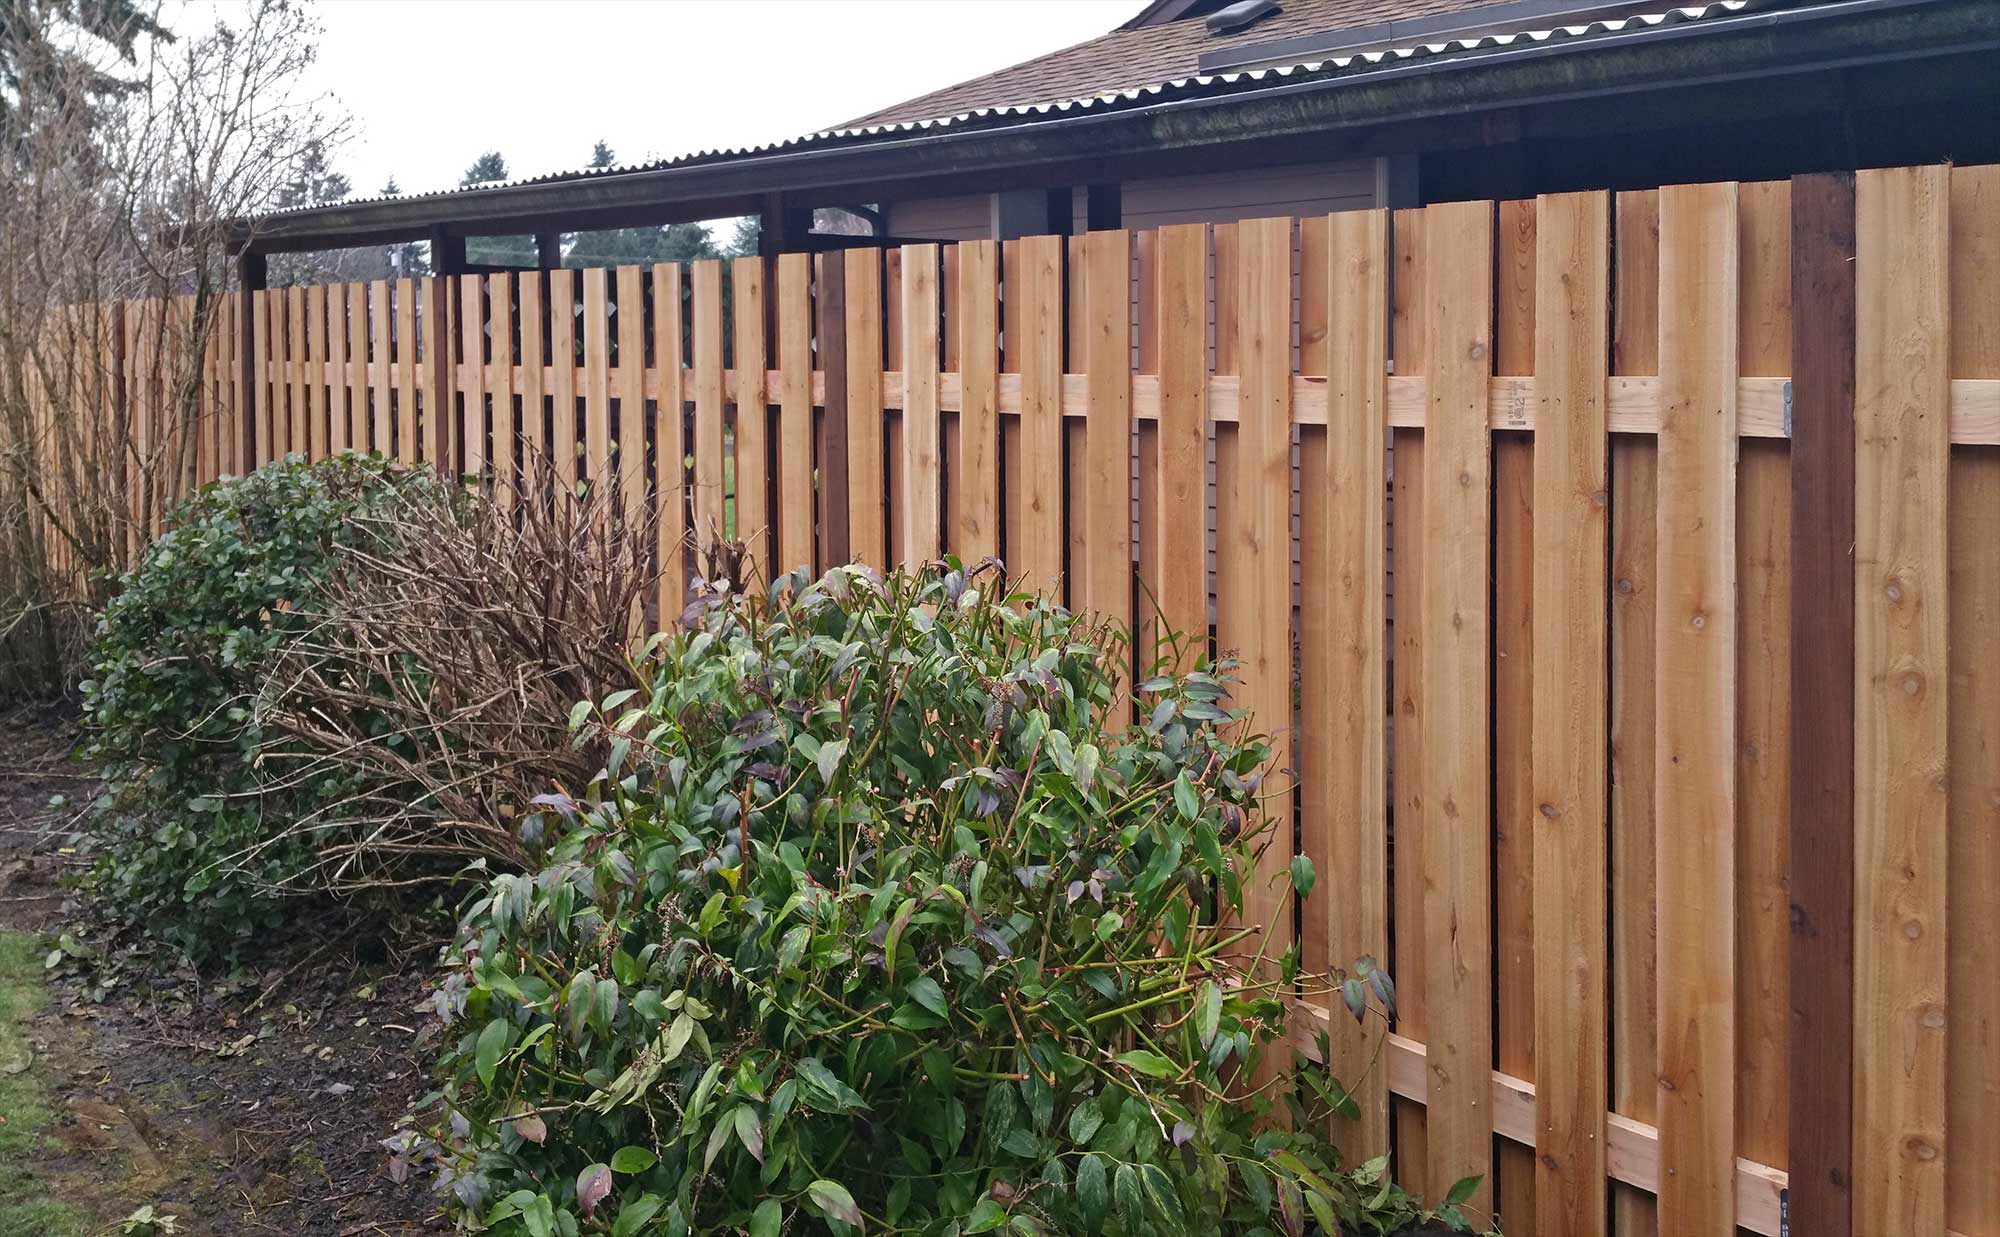 A good neighbor fence has the same profile on both sides, so there is no front or back, making it ideal for a shared fence line.